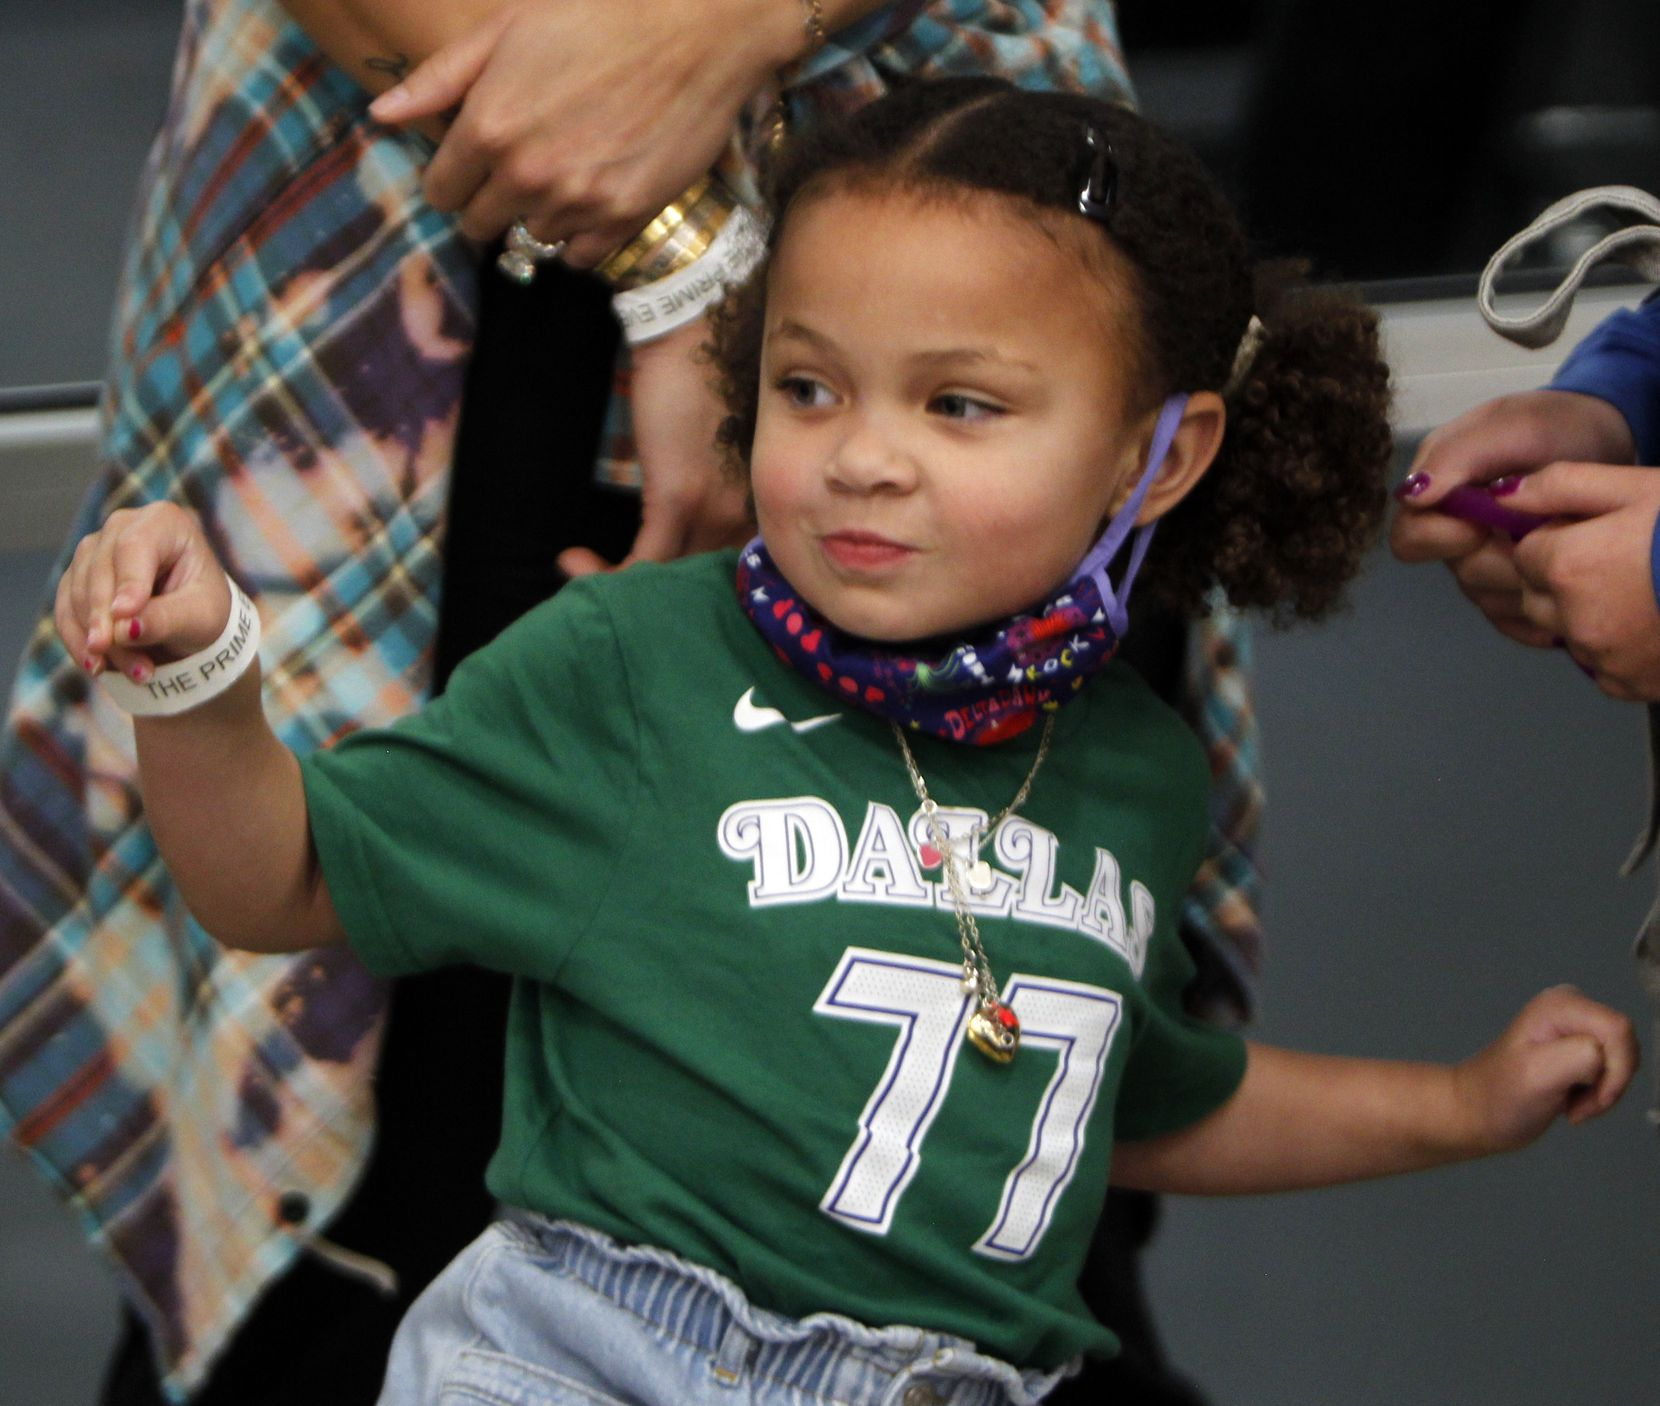 Cooper Kidd, the 3-year-old daughter of Jason and Porschla Kidd sports a Luka Doncic jersey while in attendance with the Kidd family to watch a game featuring Kidd Select girls basketball team which the family sponsors. The tournament was held at Fieldhouse USA in Mansfield on August 21, 2021. (Steve Hamm/ Special Contributor)